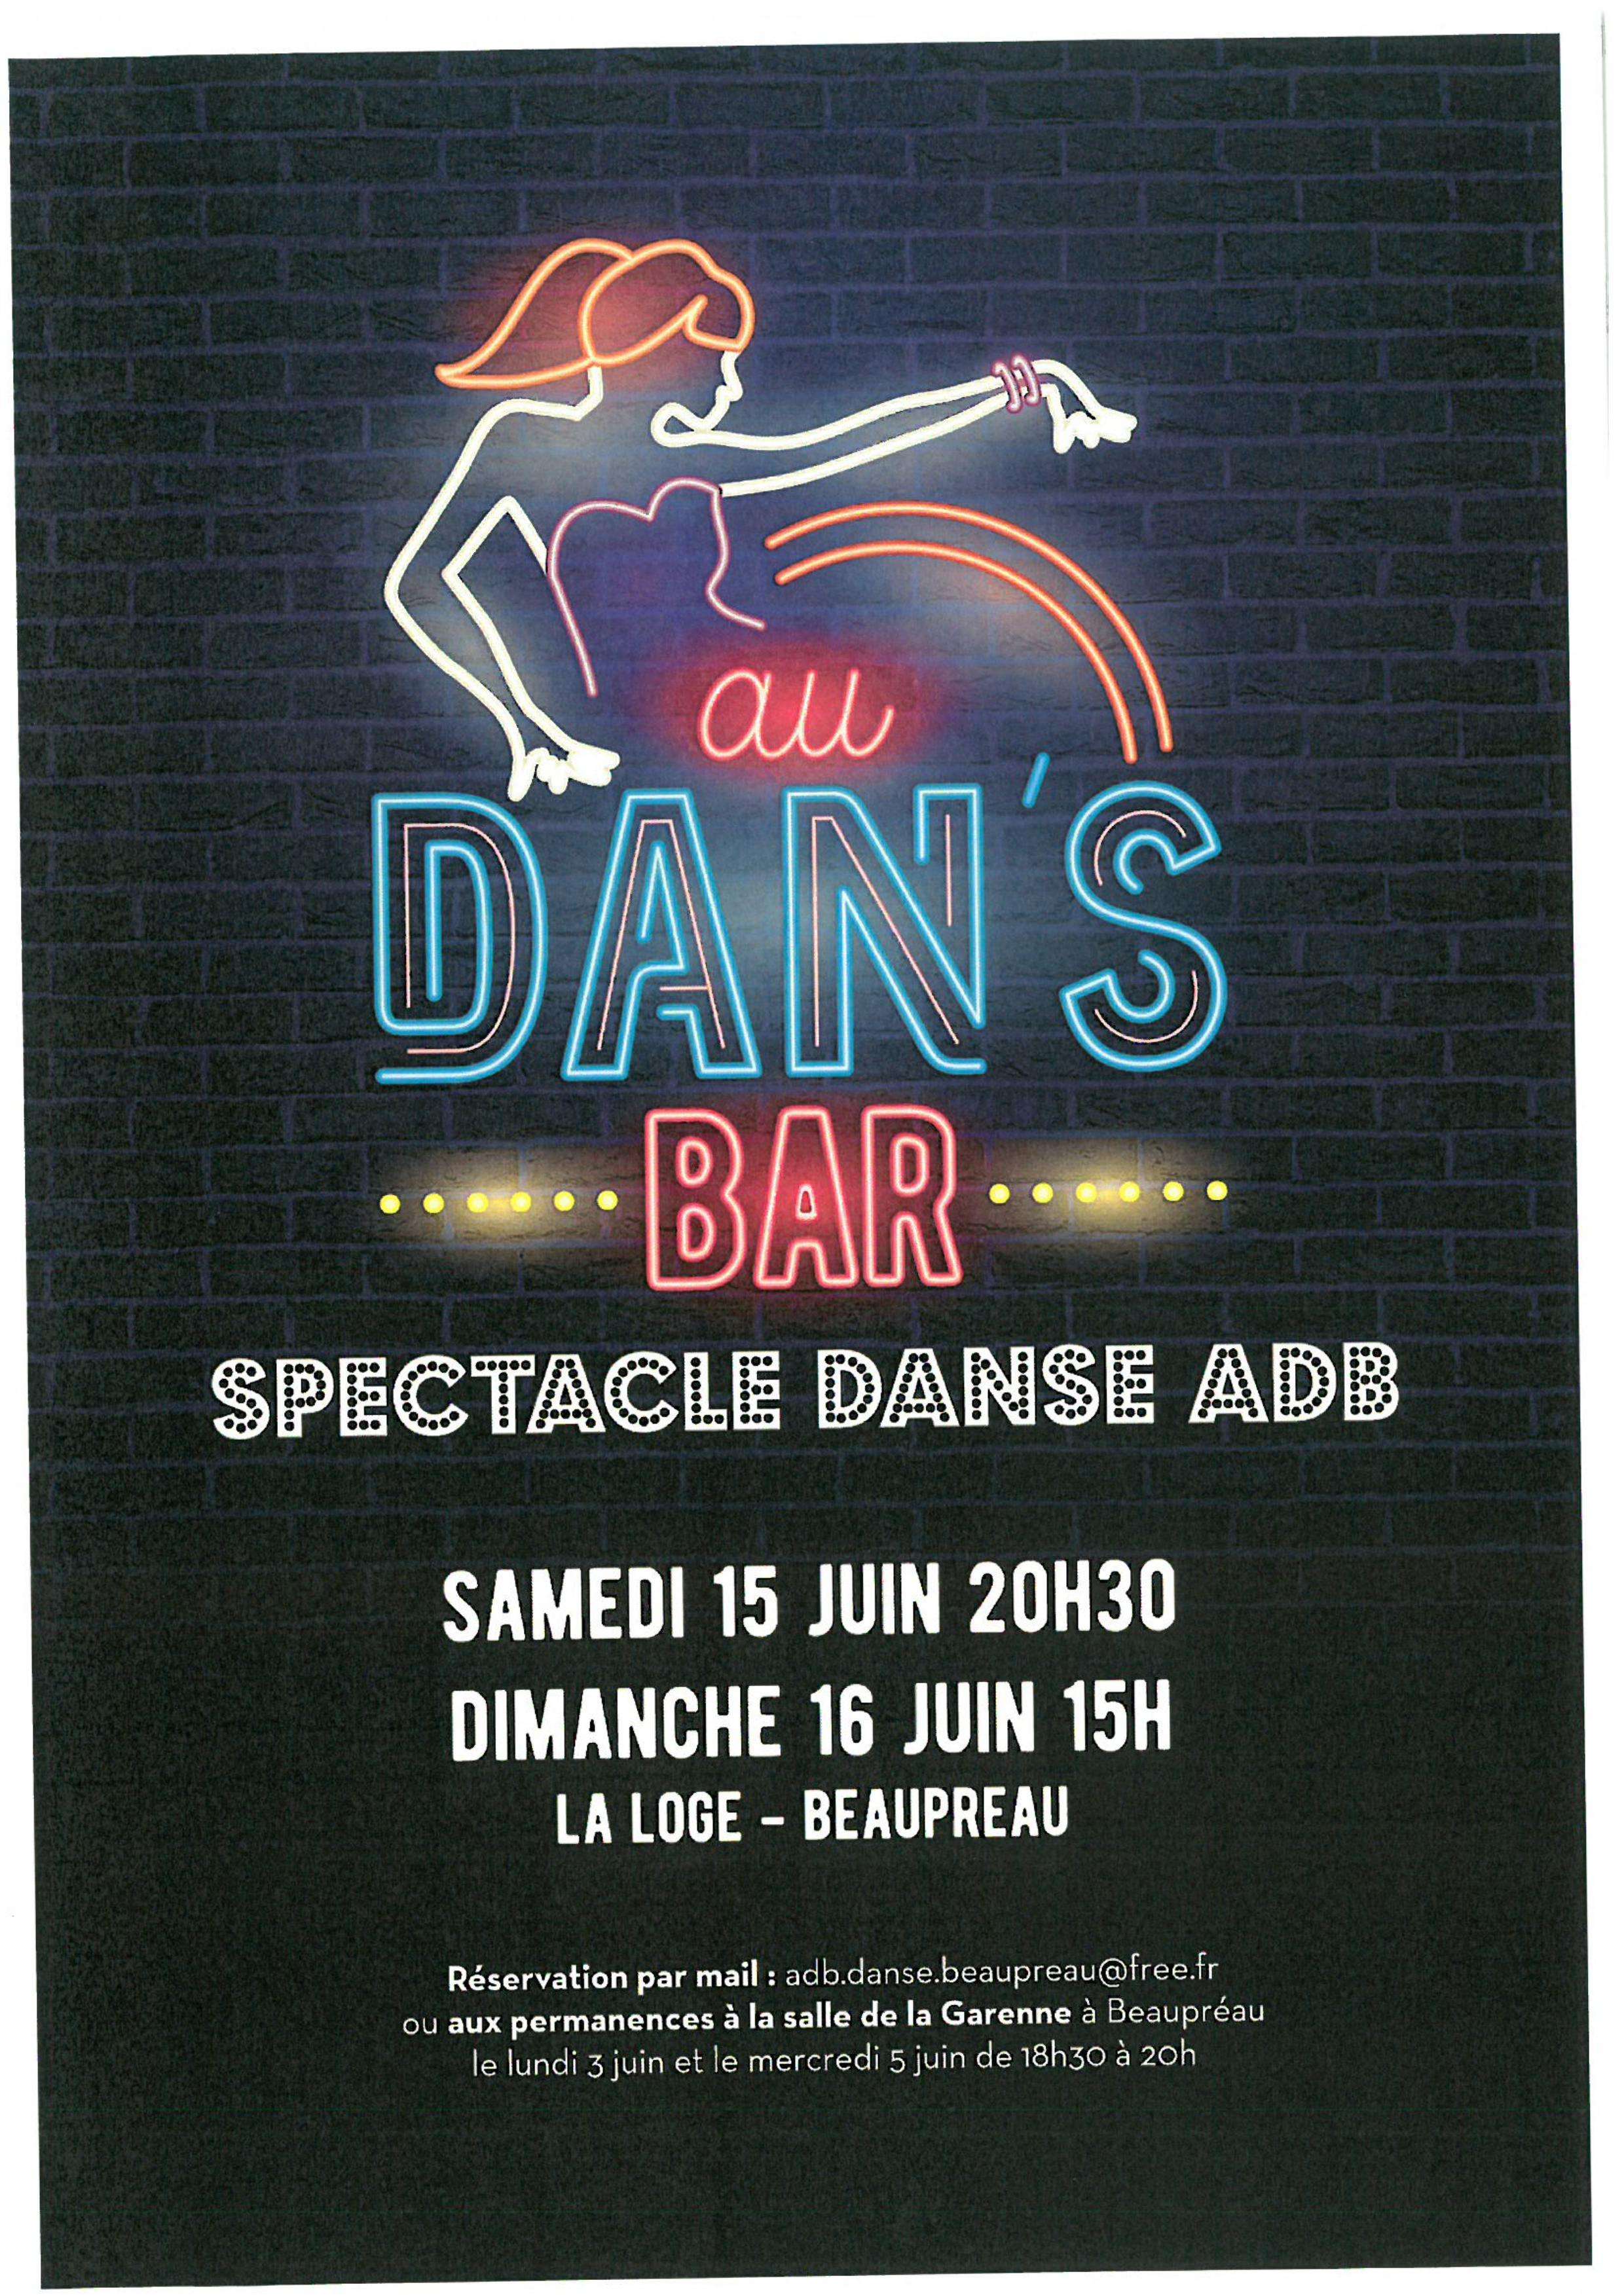 SPECTACLE DANSE ADB